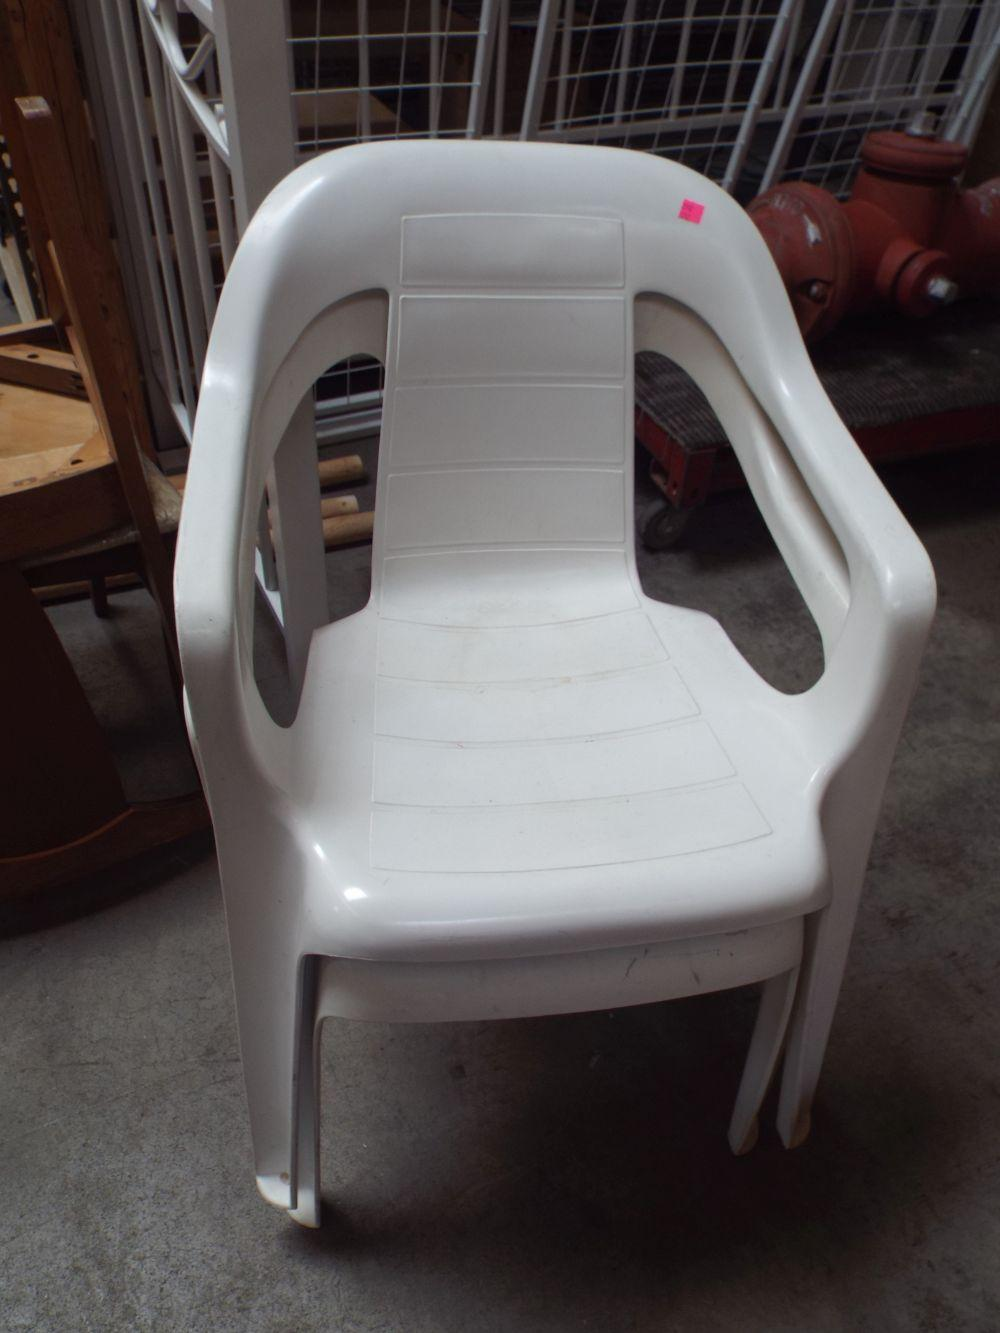 Sold Price Two White Plastic Lawn Chairs Invalid Date Mst